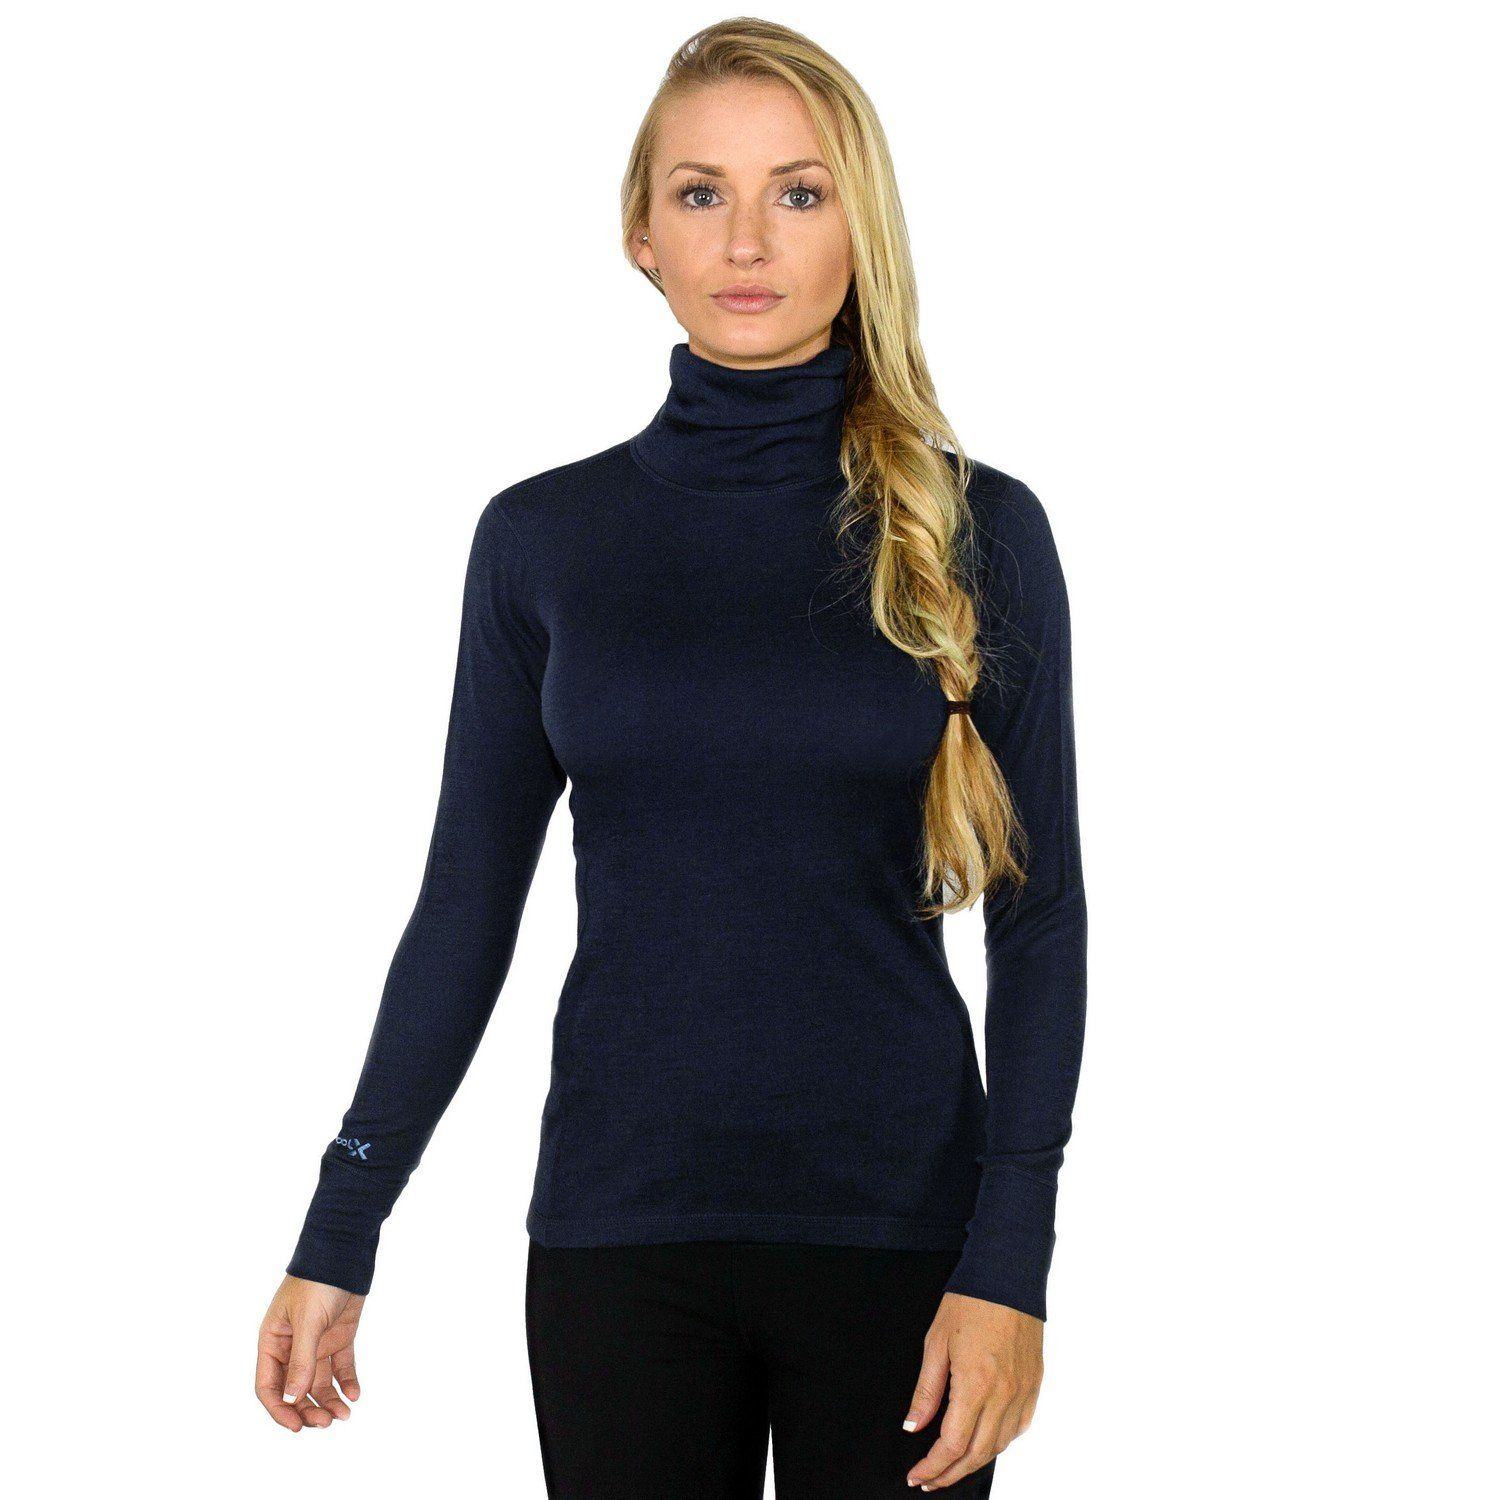 Womens Peyton Turtleneck Cohabitation Unowned Sporty Bri Genevieve 90026 Classic Bagpack Best Seller Our Merino Wool Will Look Just As Good On The Slopes It In Office 100 Warmth And Style One Free Shipping